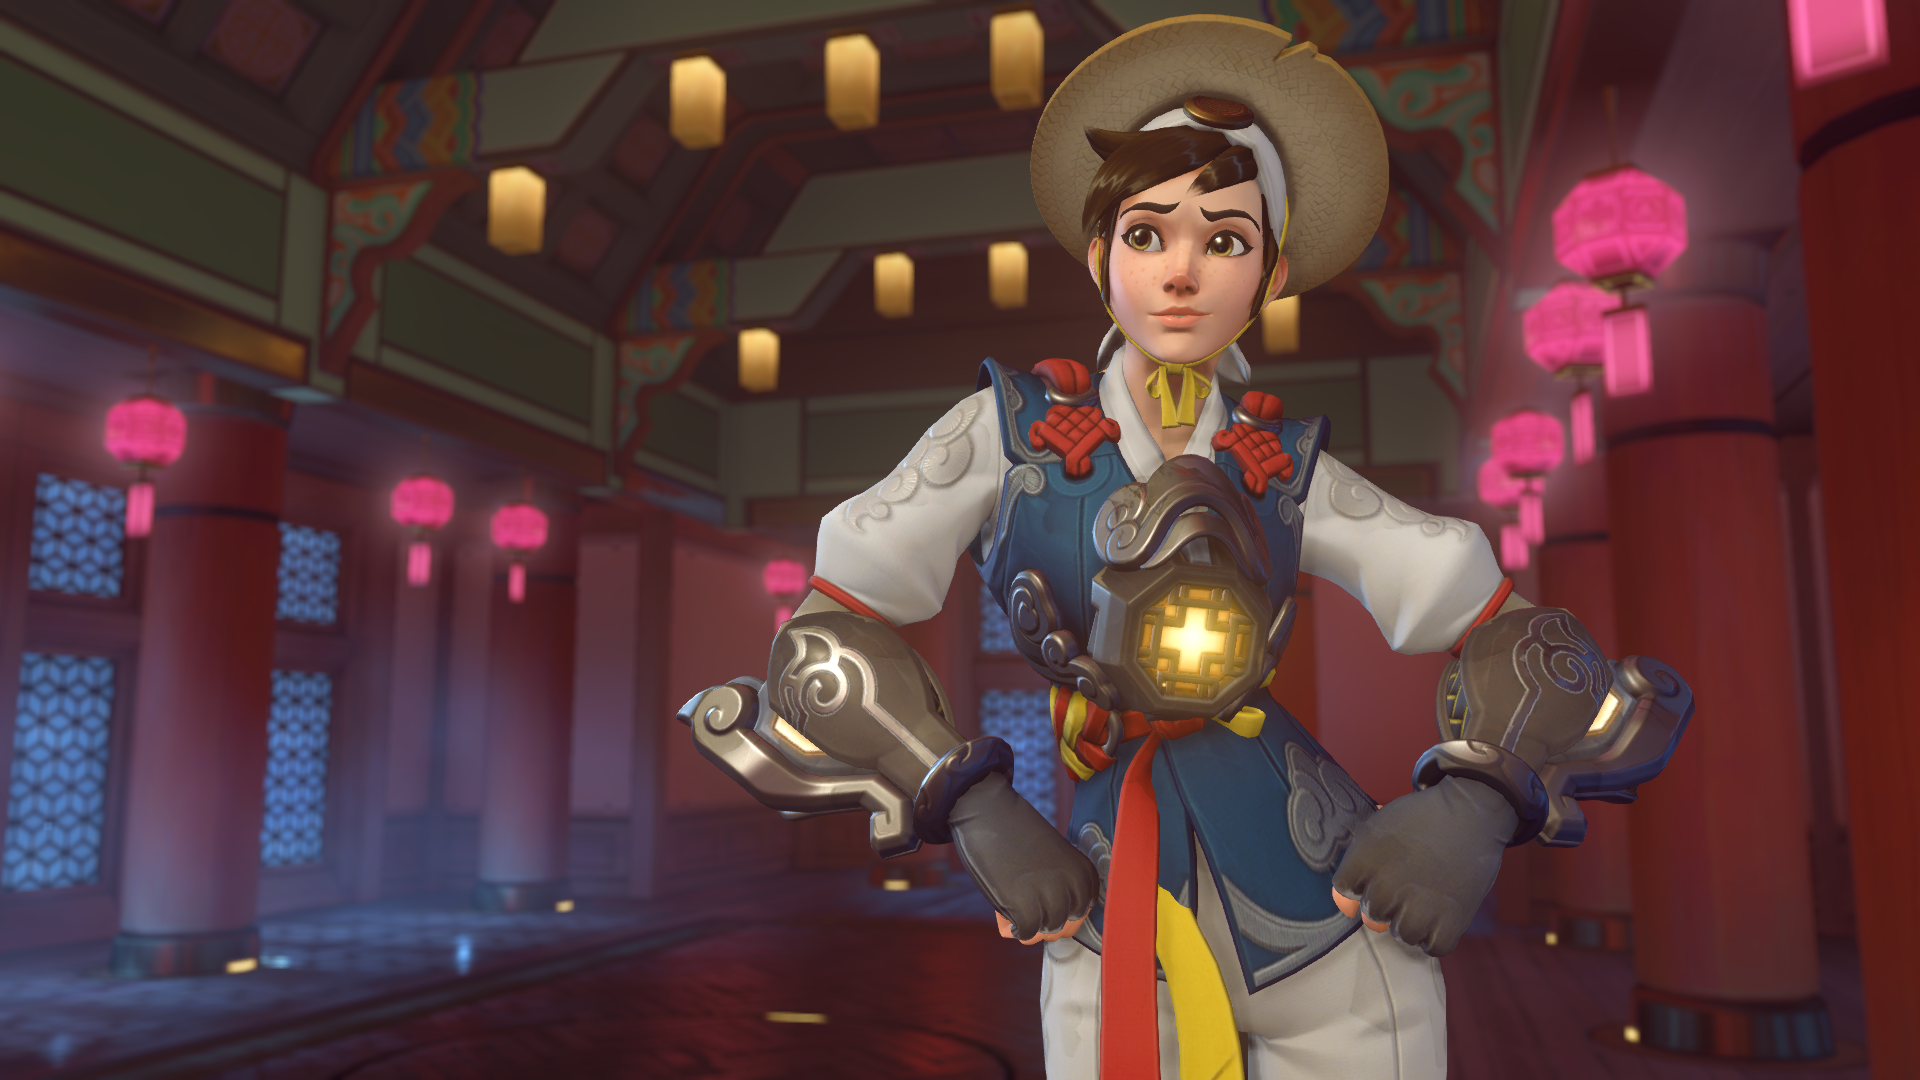 Here are all the 2019 Lunar New Year Overwatch skins